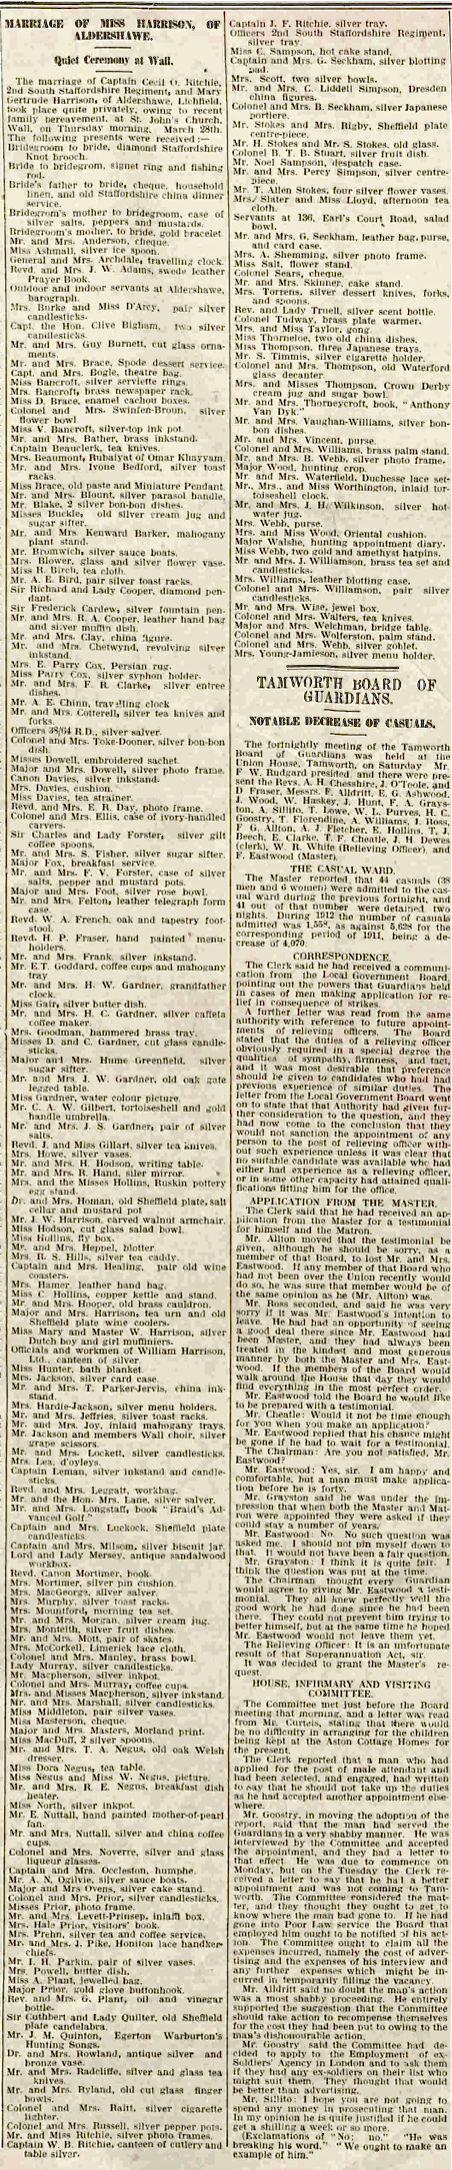 From the Lichfield Mercury, Friday 5th April 1912. Click for a larger version.